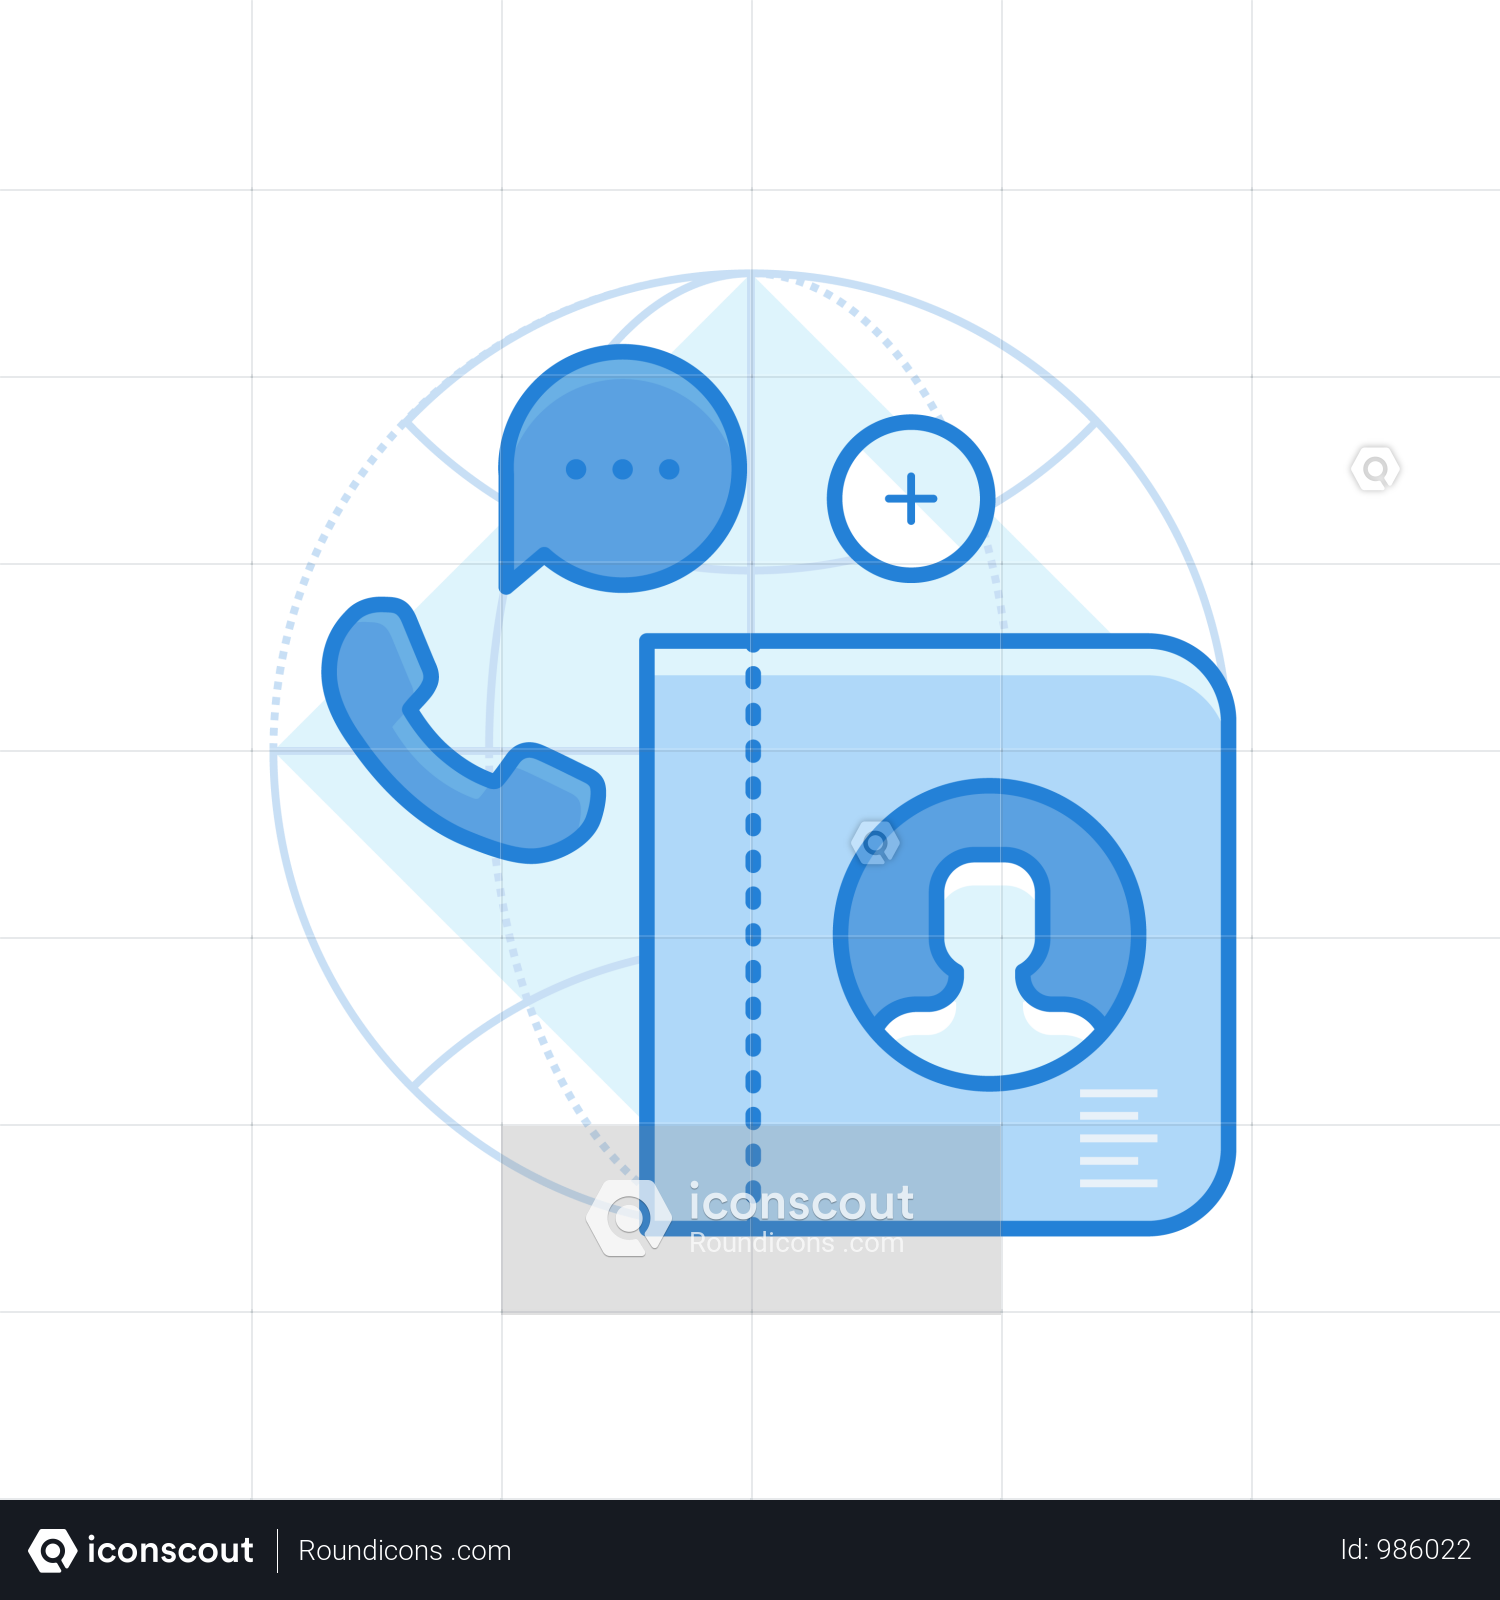 Premium Contacts Illustration Download In Png Vector Format Illustration Mobile Interface Smartphone Features